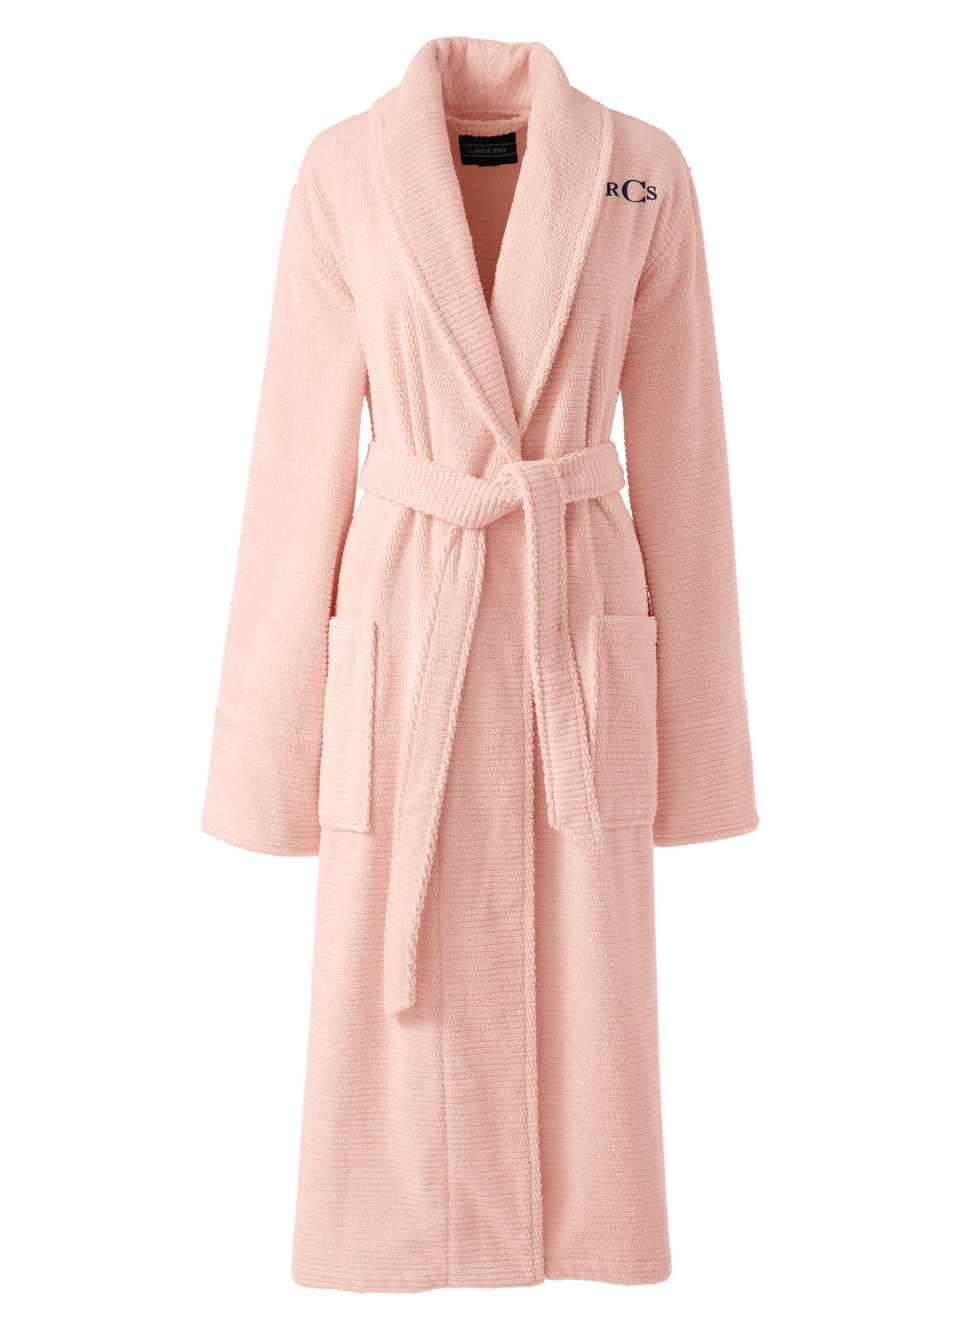 Luxury Personalised Any Name White ladies dressing gown SOFT TOUCH Gorgeous